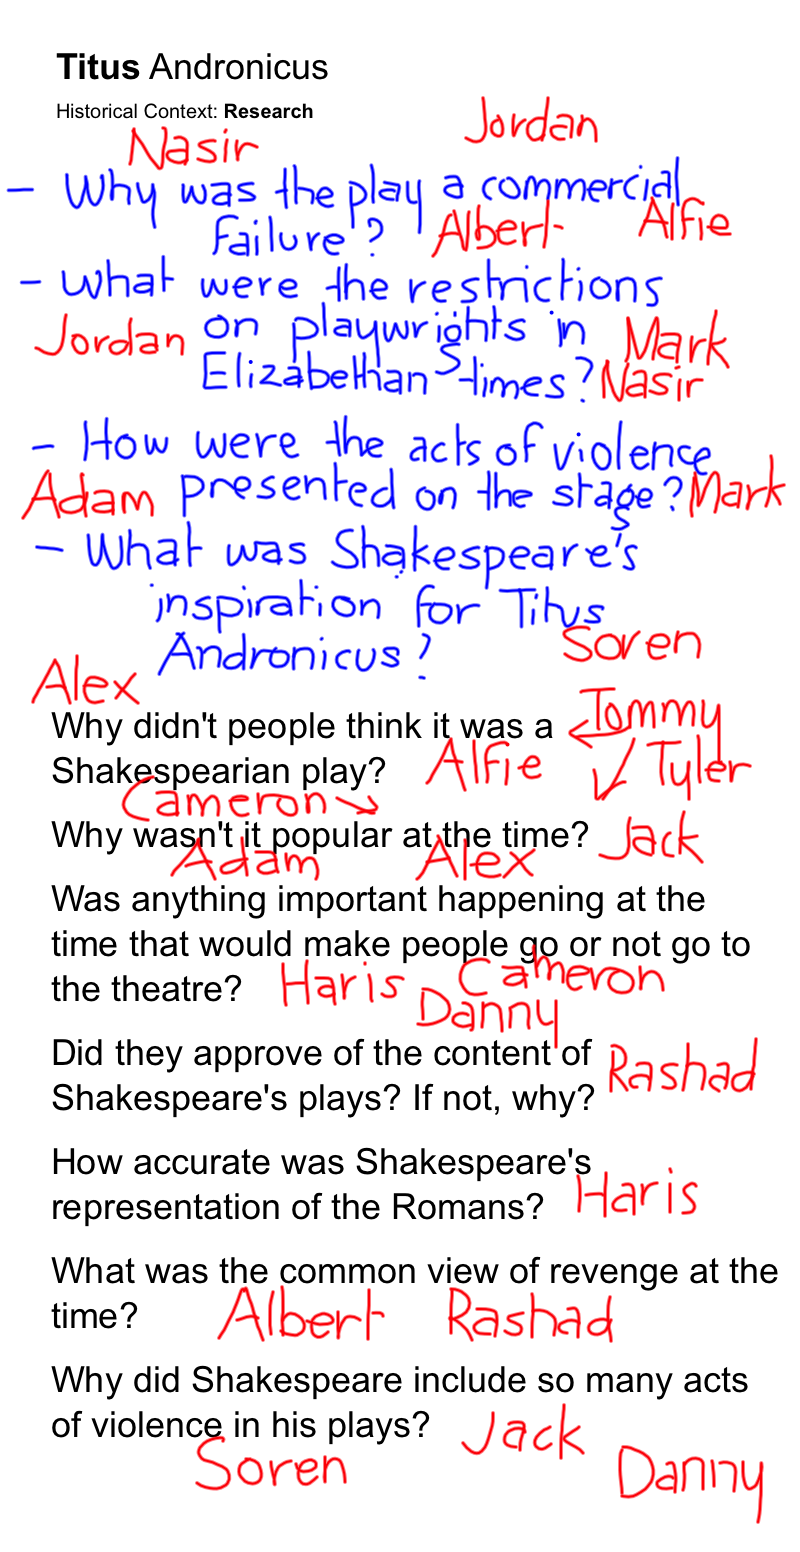 titus andronicus essay In this essay, it will access the ways of the original staging conditions of 'william shakespeare's play, 'titus andronicus' it will also.